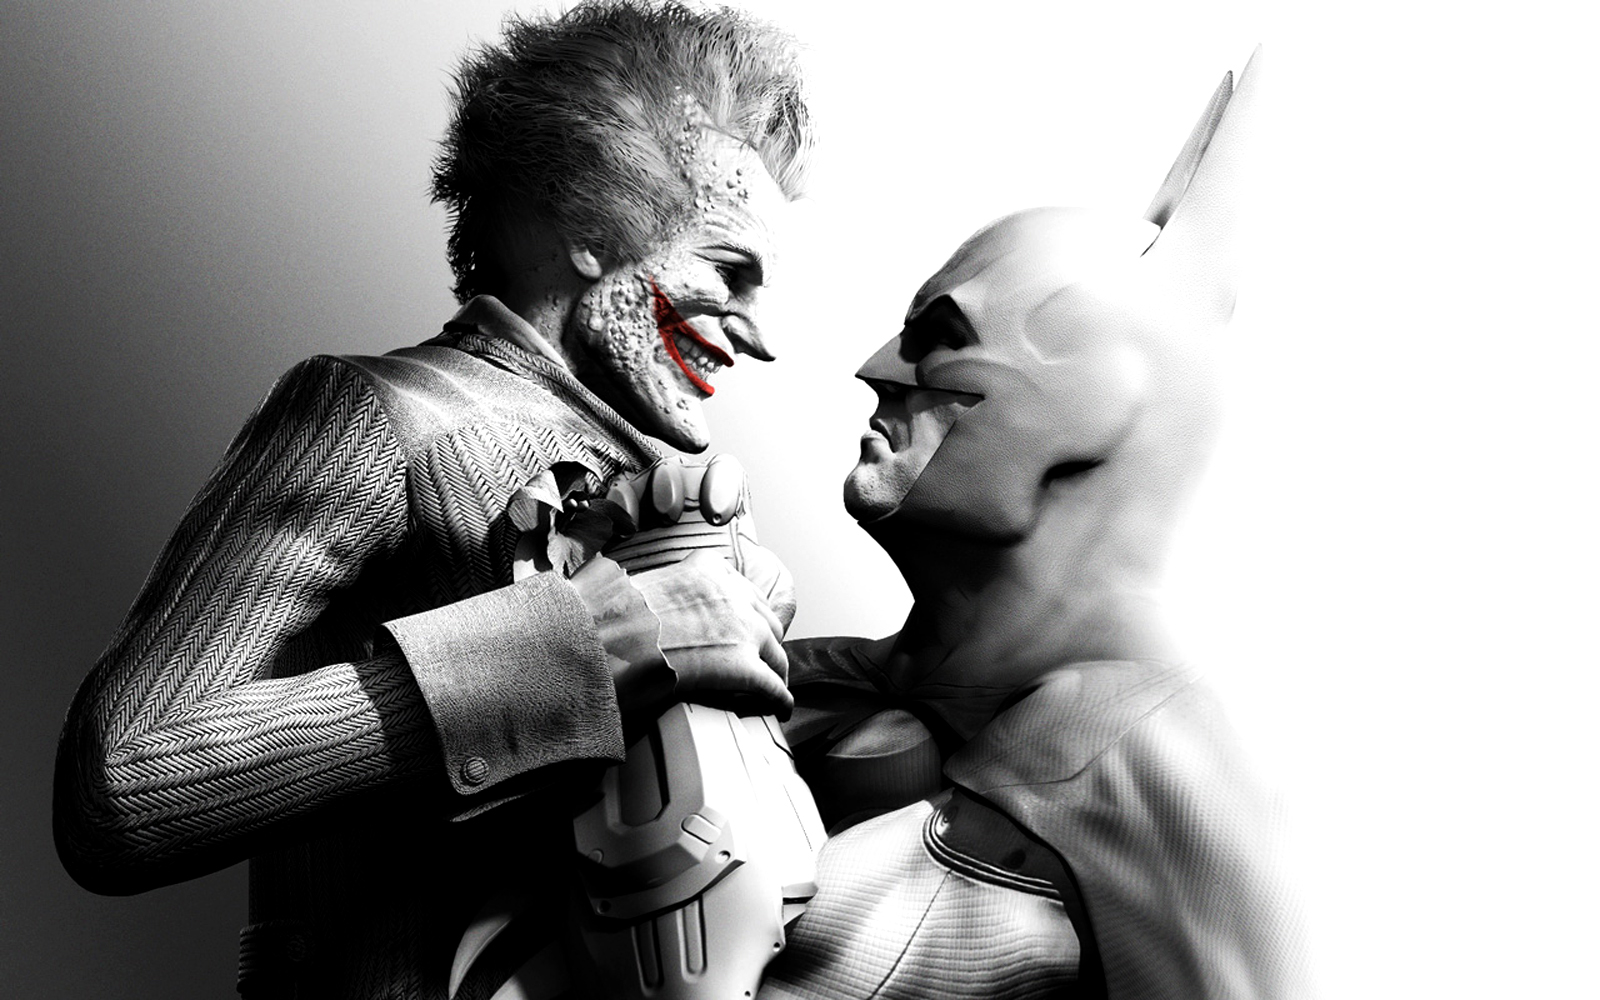 http://4.bp.blogspot.com/-k6Zhh4VGJ3A/T1PB1MT-uZI/AAAAAAAAAzI/dKndkoi5wDY/s1600/Batman_and_Joker_Batman_Archam_City_HD_Wallpaper-gWb.jpg